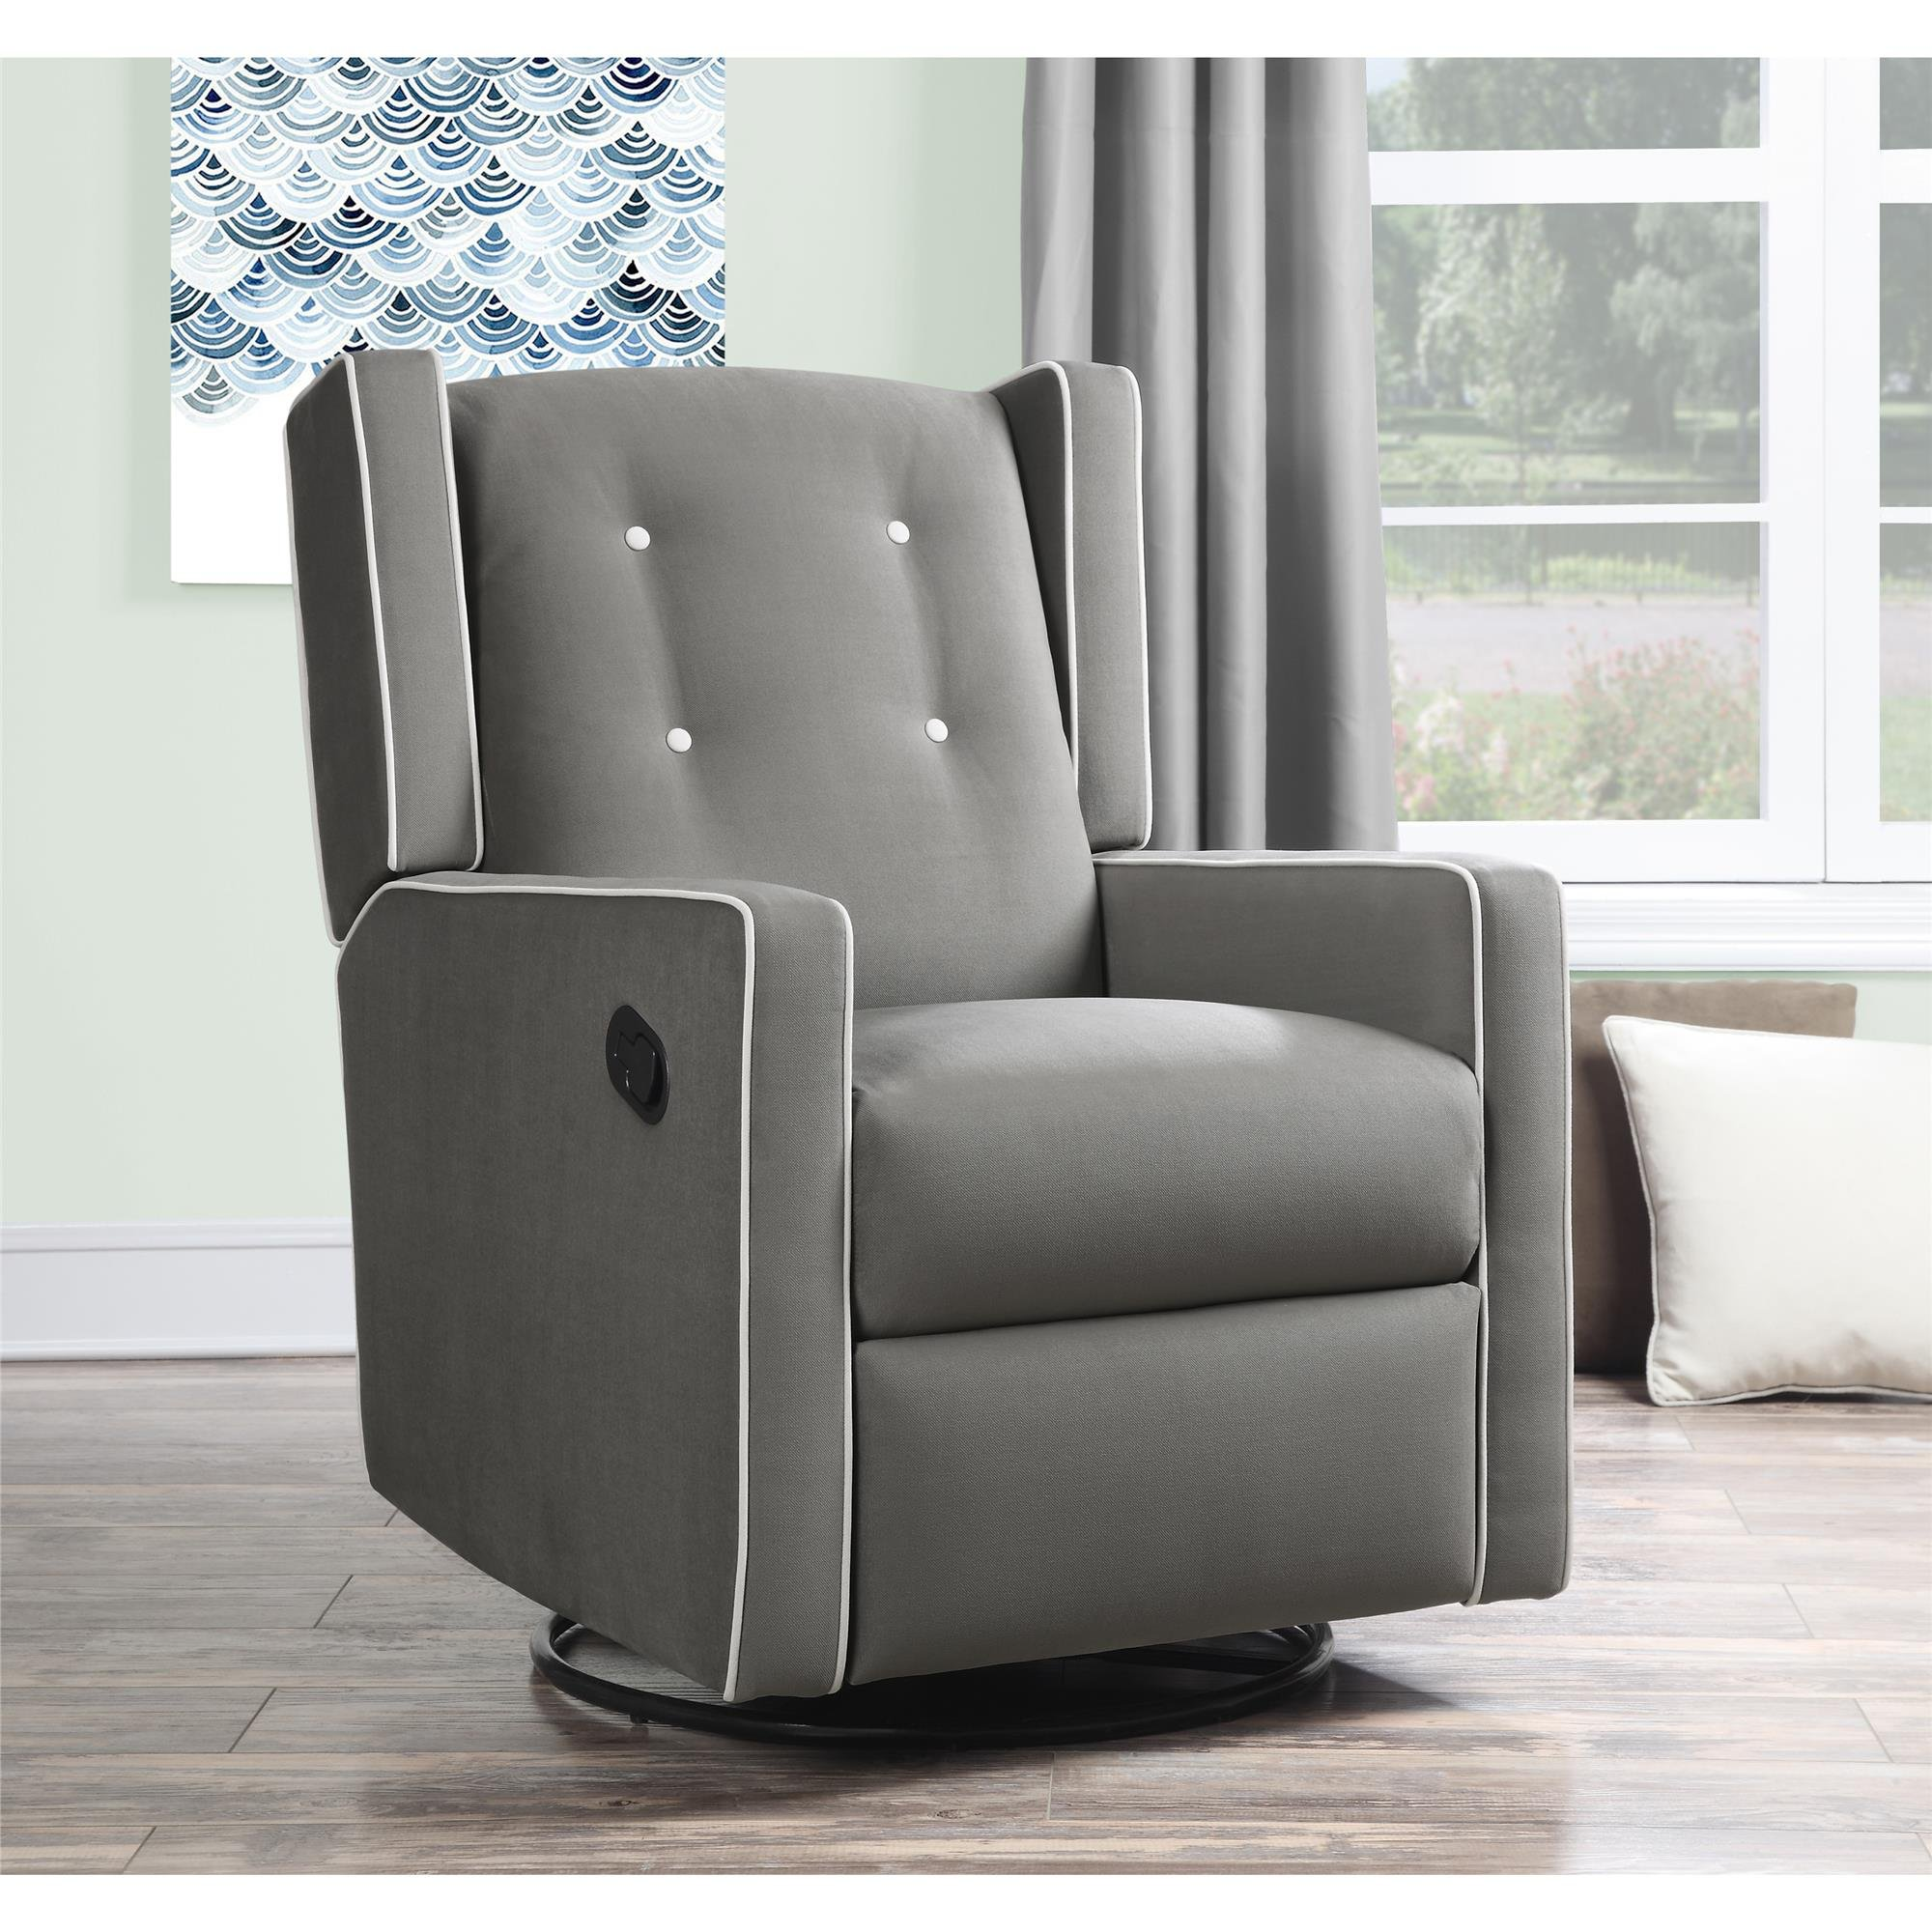 Baby Relax Mikayla Swivel Gliding Recliner, Gray Microfiber by Baby Relax (Image #3)